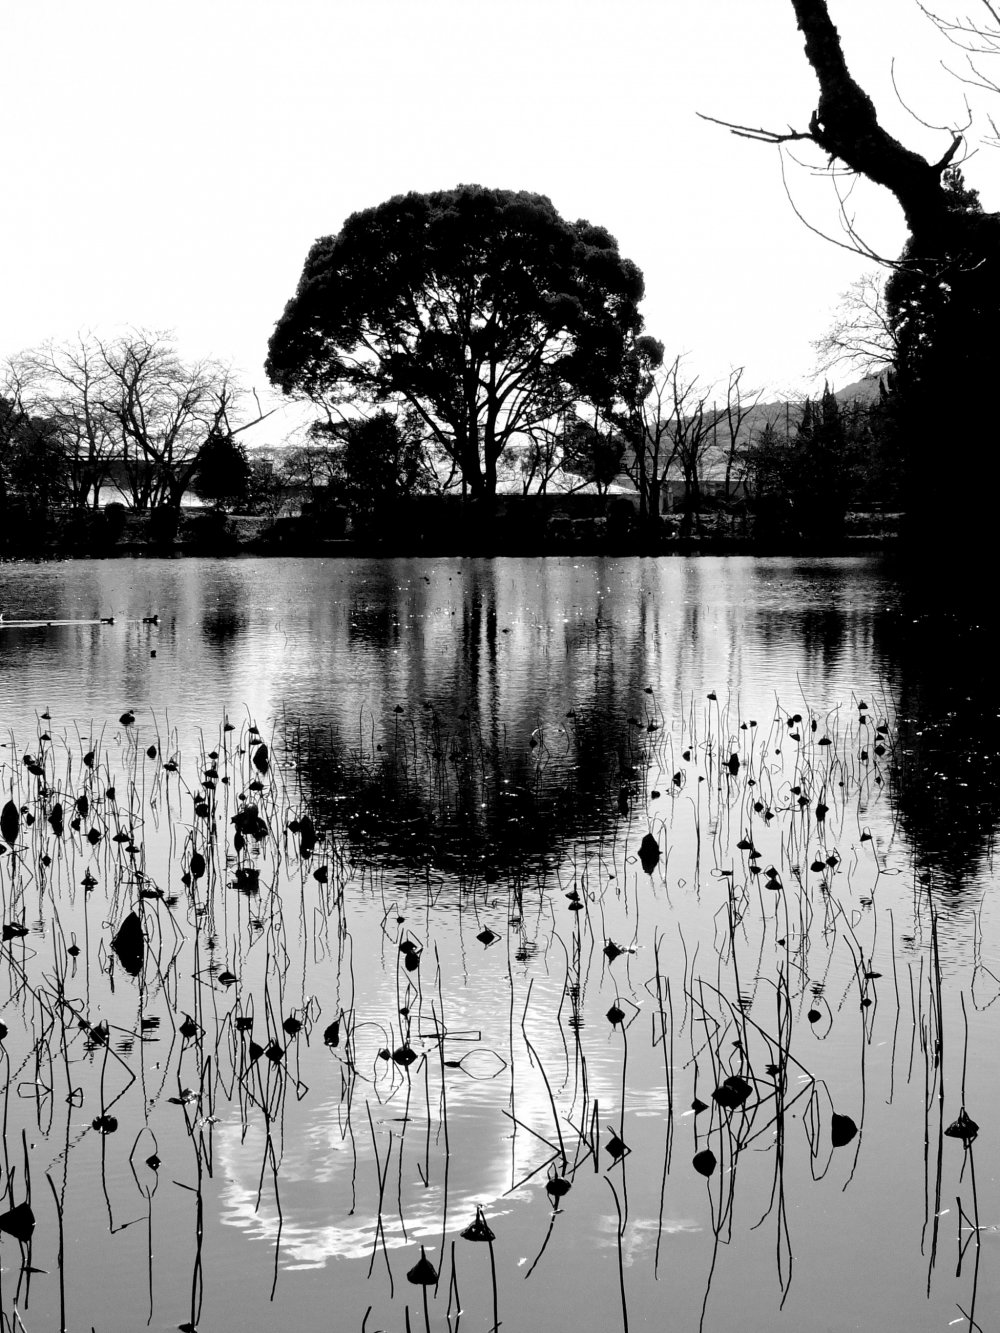 Osawa-no-ike Pond in late December